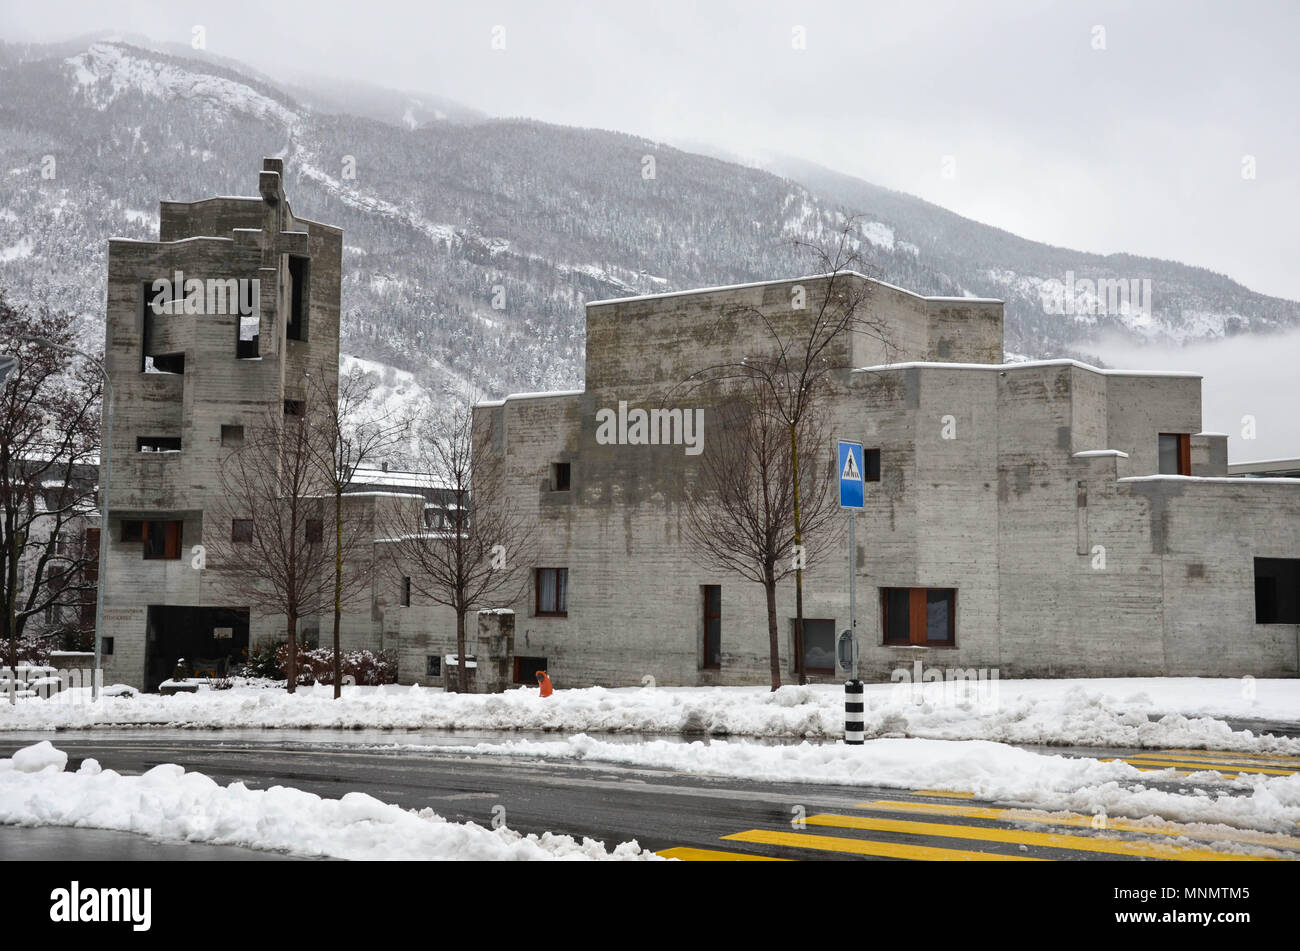 Holy Cross Church (Heiligkreuzkirche), designed by architect Walter Maria Förderer, completed 1969, Chur, Grisons canton, Switzerland, January 2018 - Stock Image